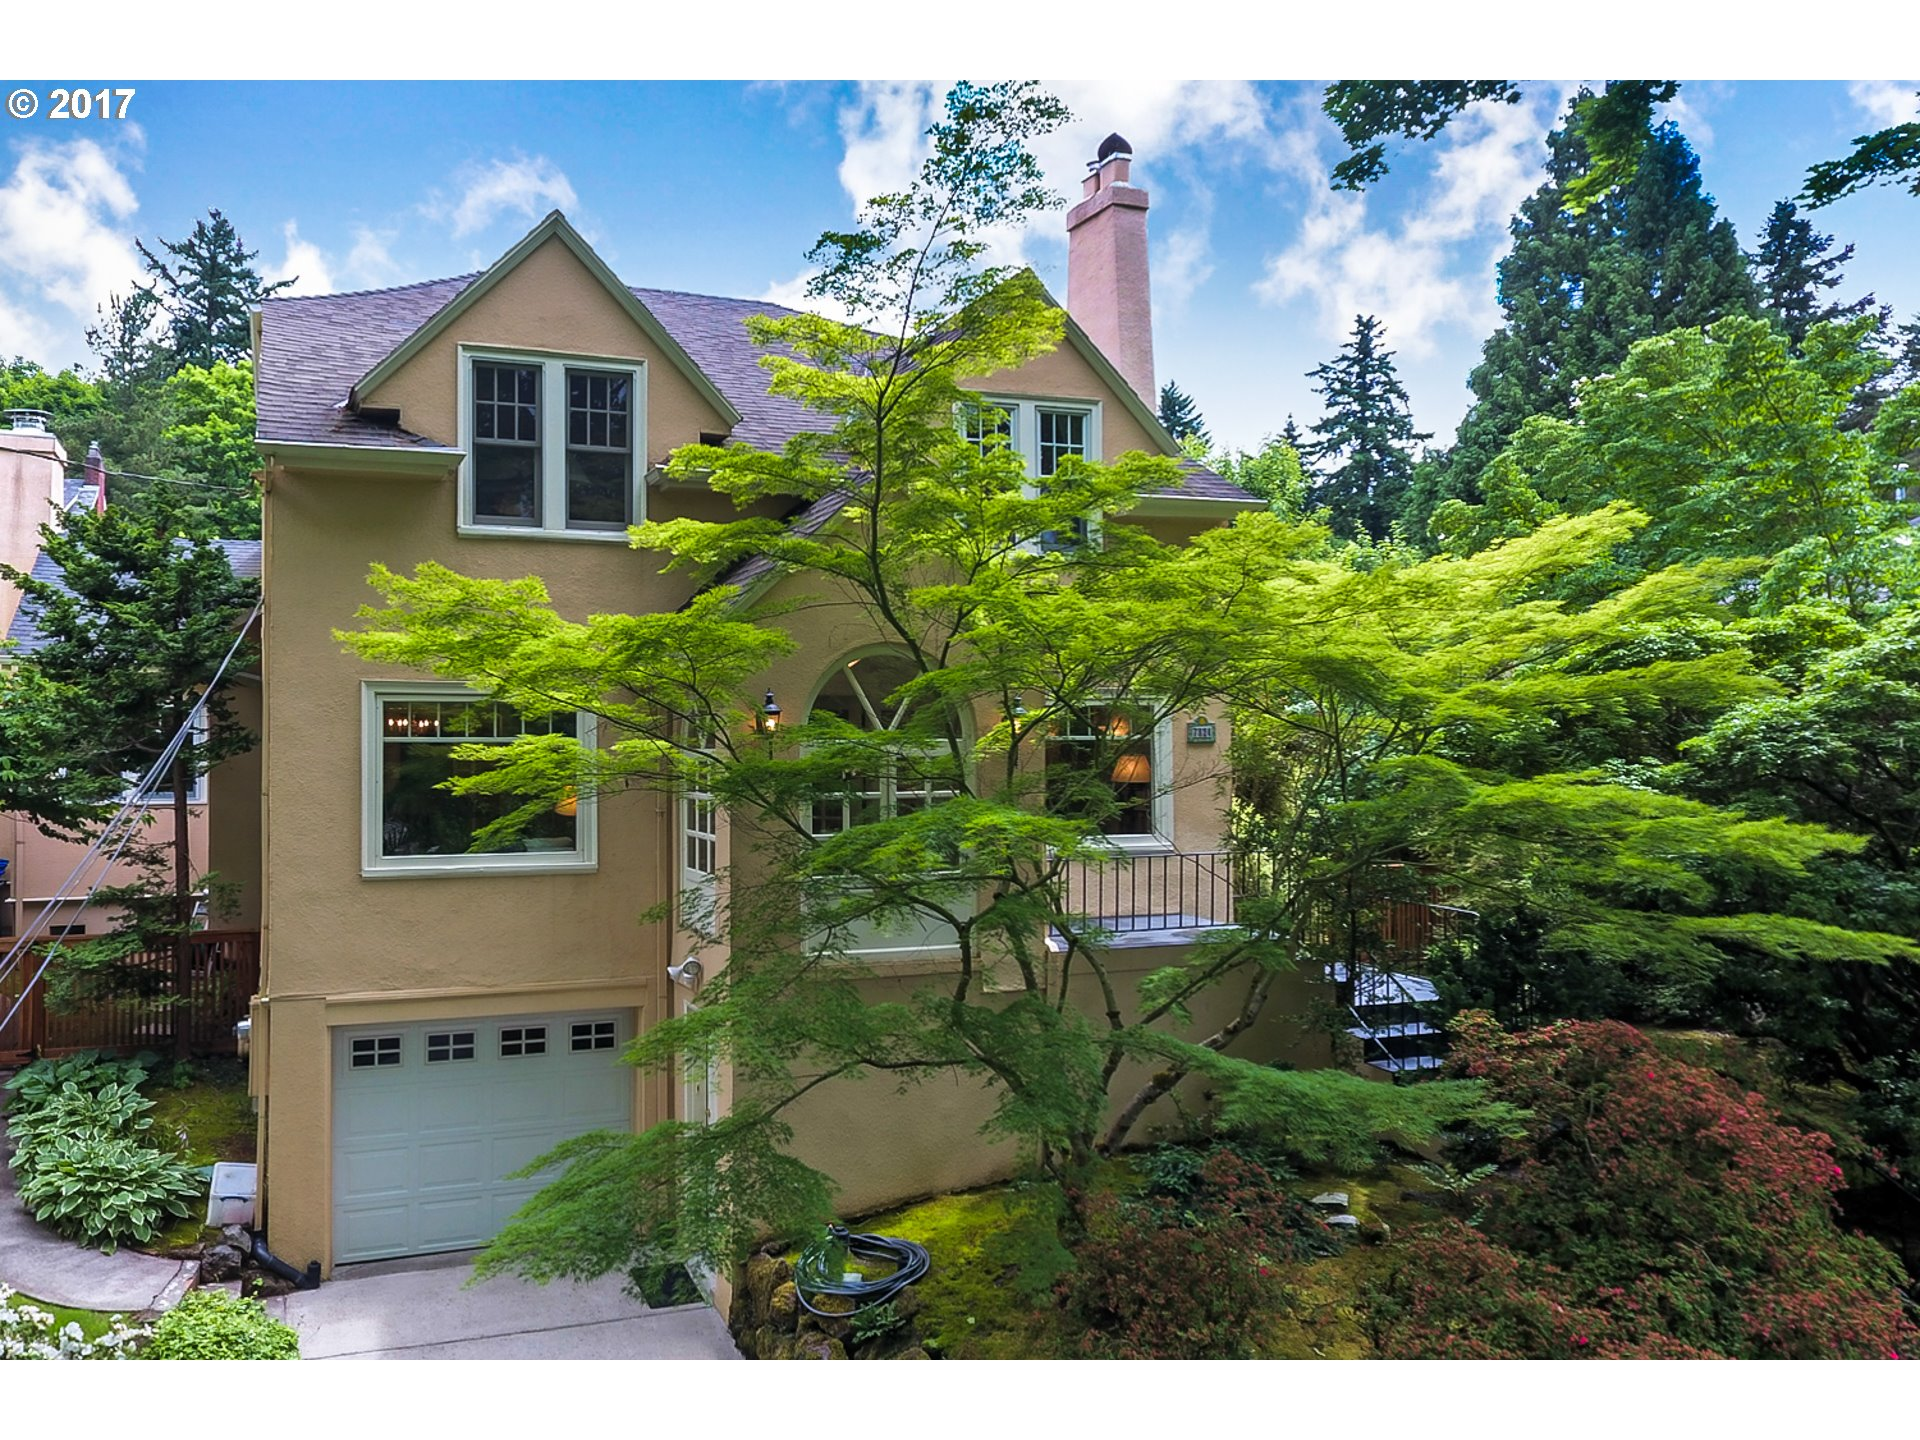 7824 Se 27th Ave, Portland, OR 97202